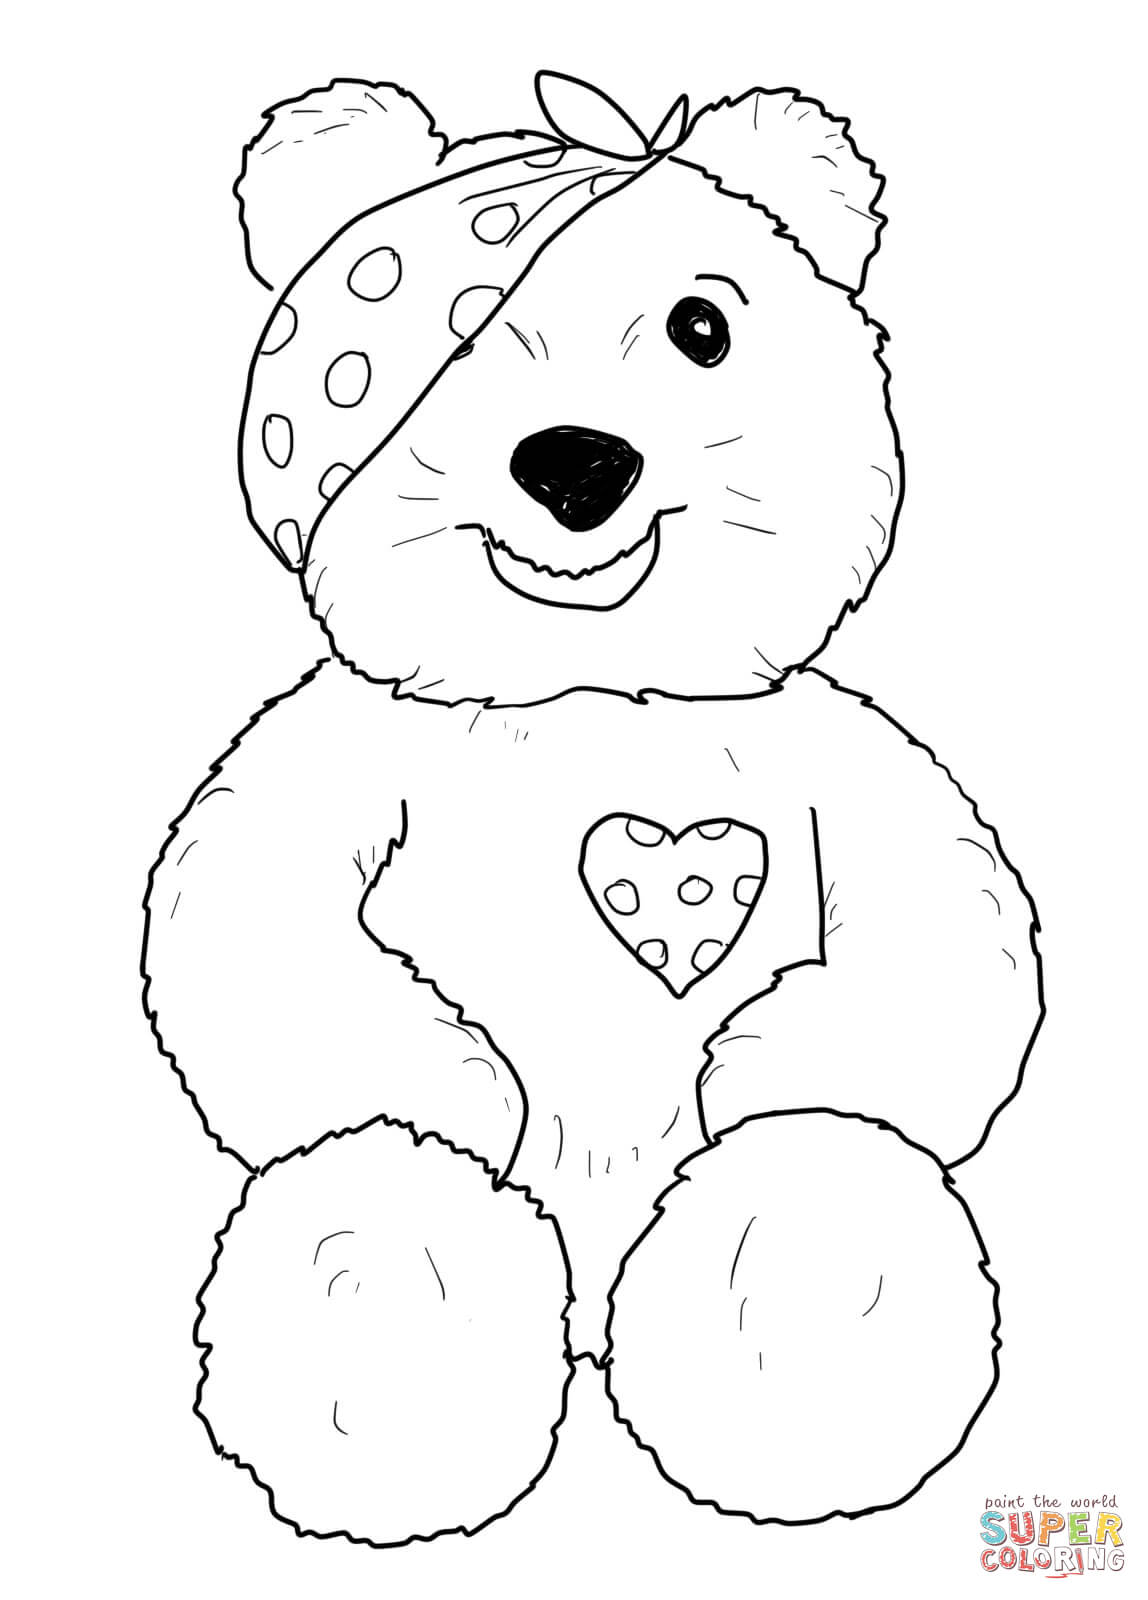 pudsey bear colouring pages free children in need mascot coloring page free printable colouring free bear pudsey pages